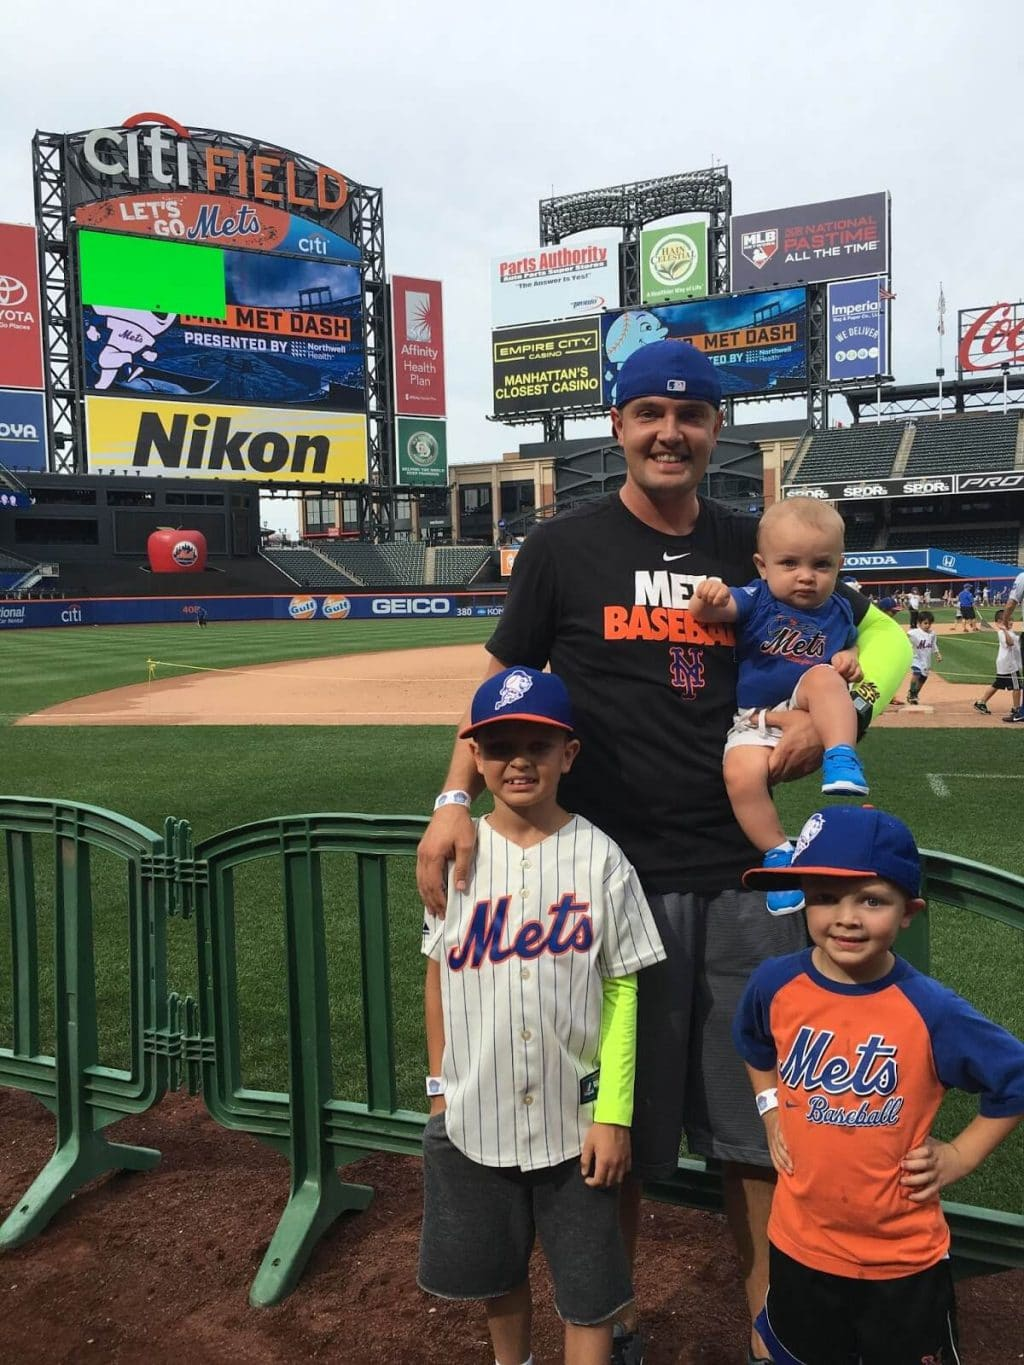 Mets Citi Field with kids run the bases Sunday